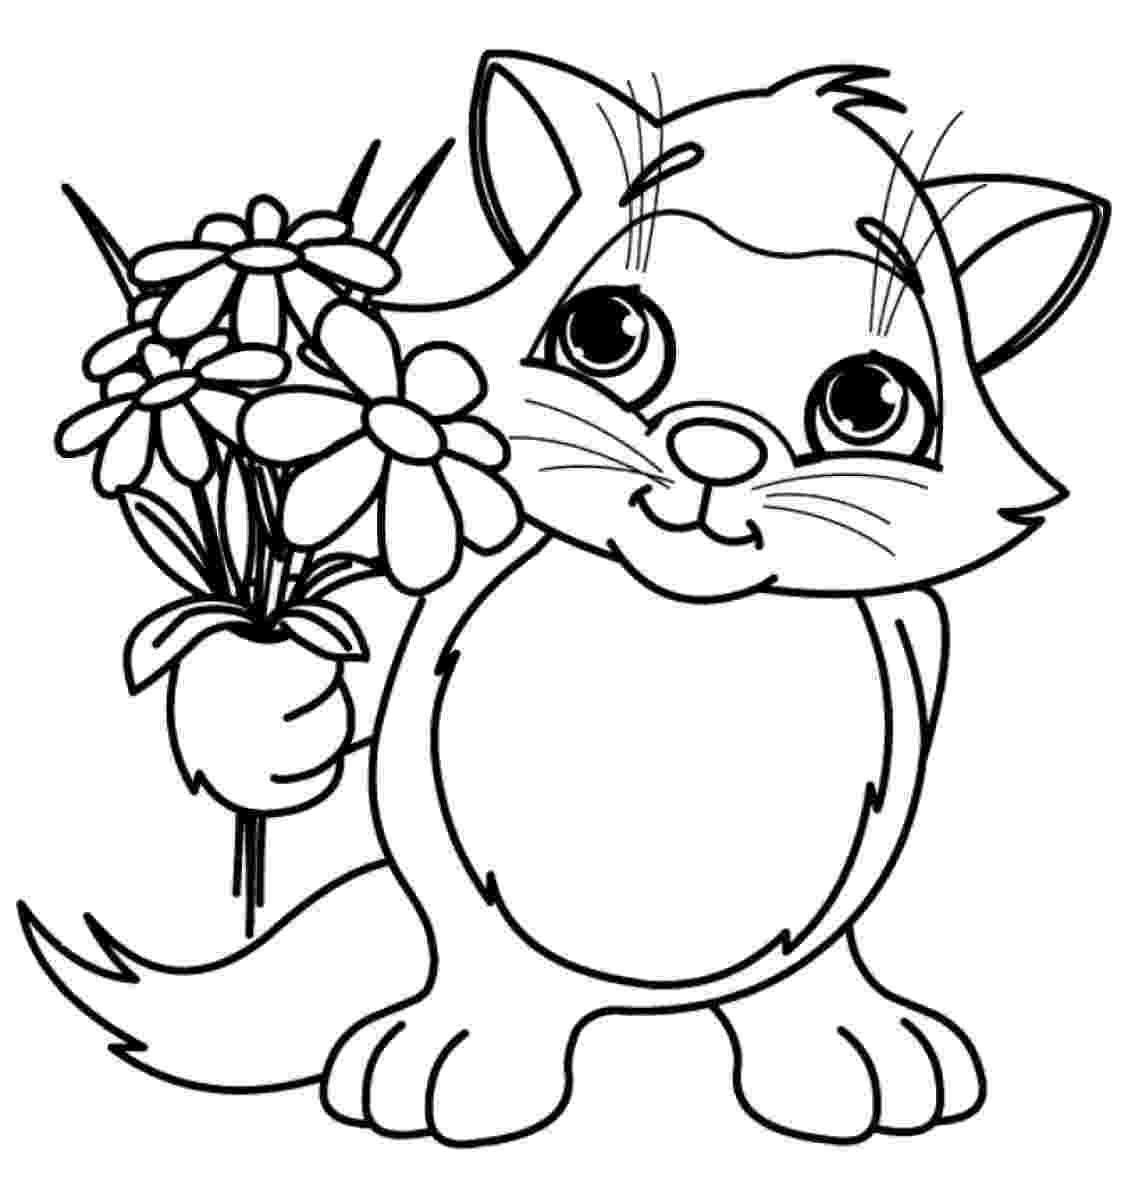 flower coloring pages printables free printable flower coloring pages for kids best pages coloring printables flower